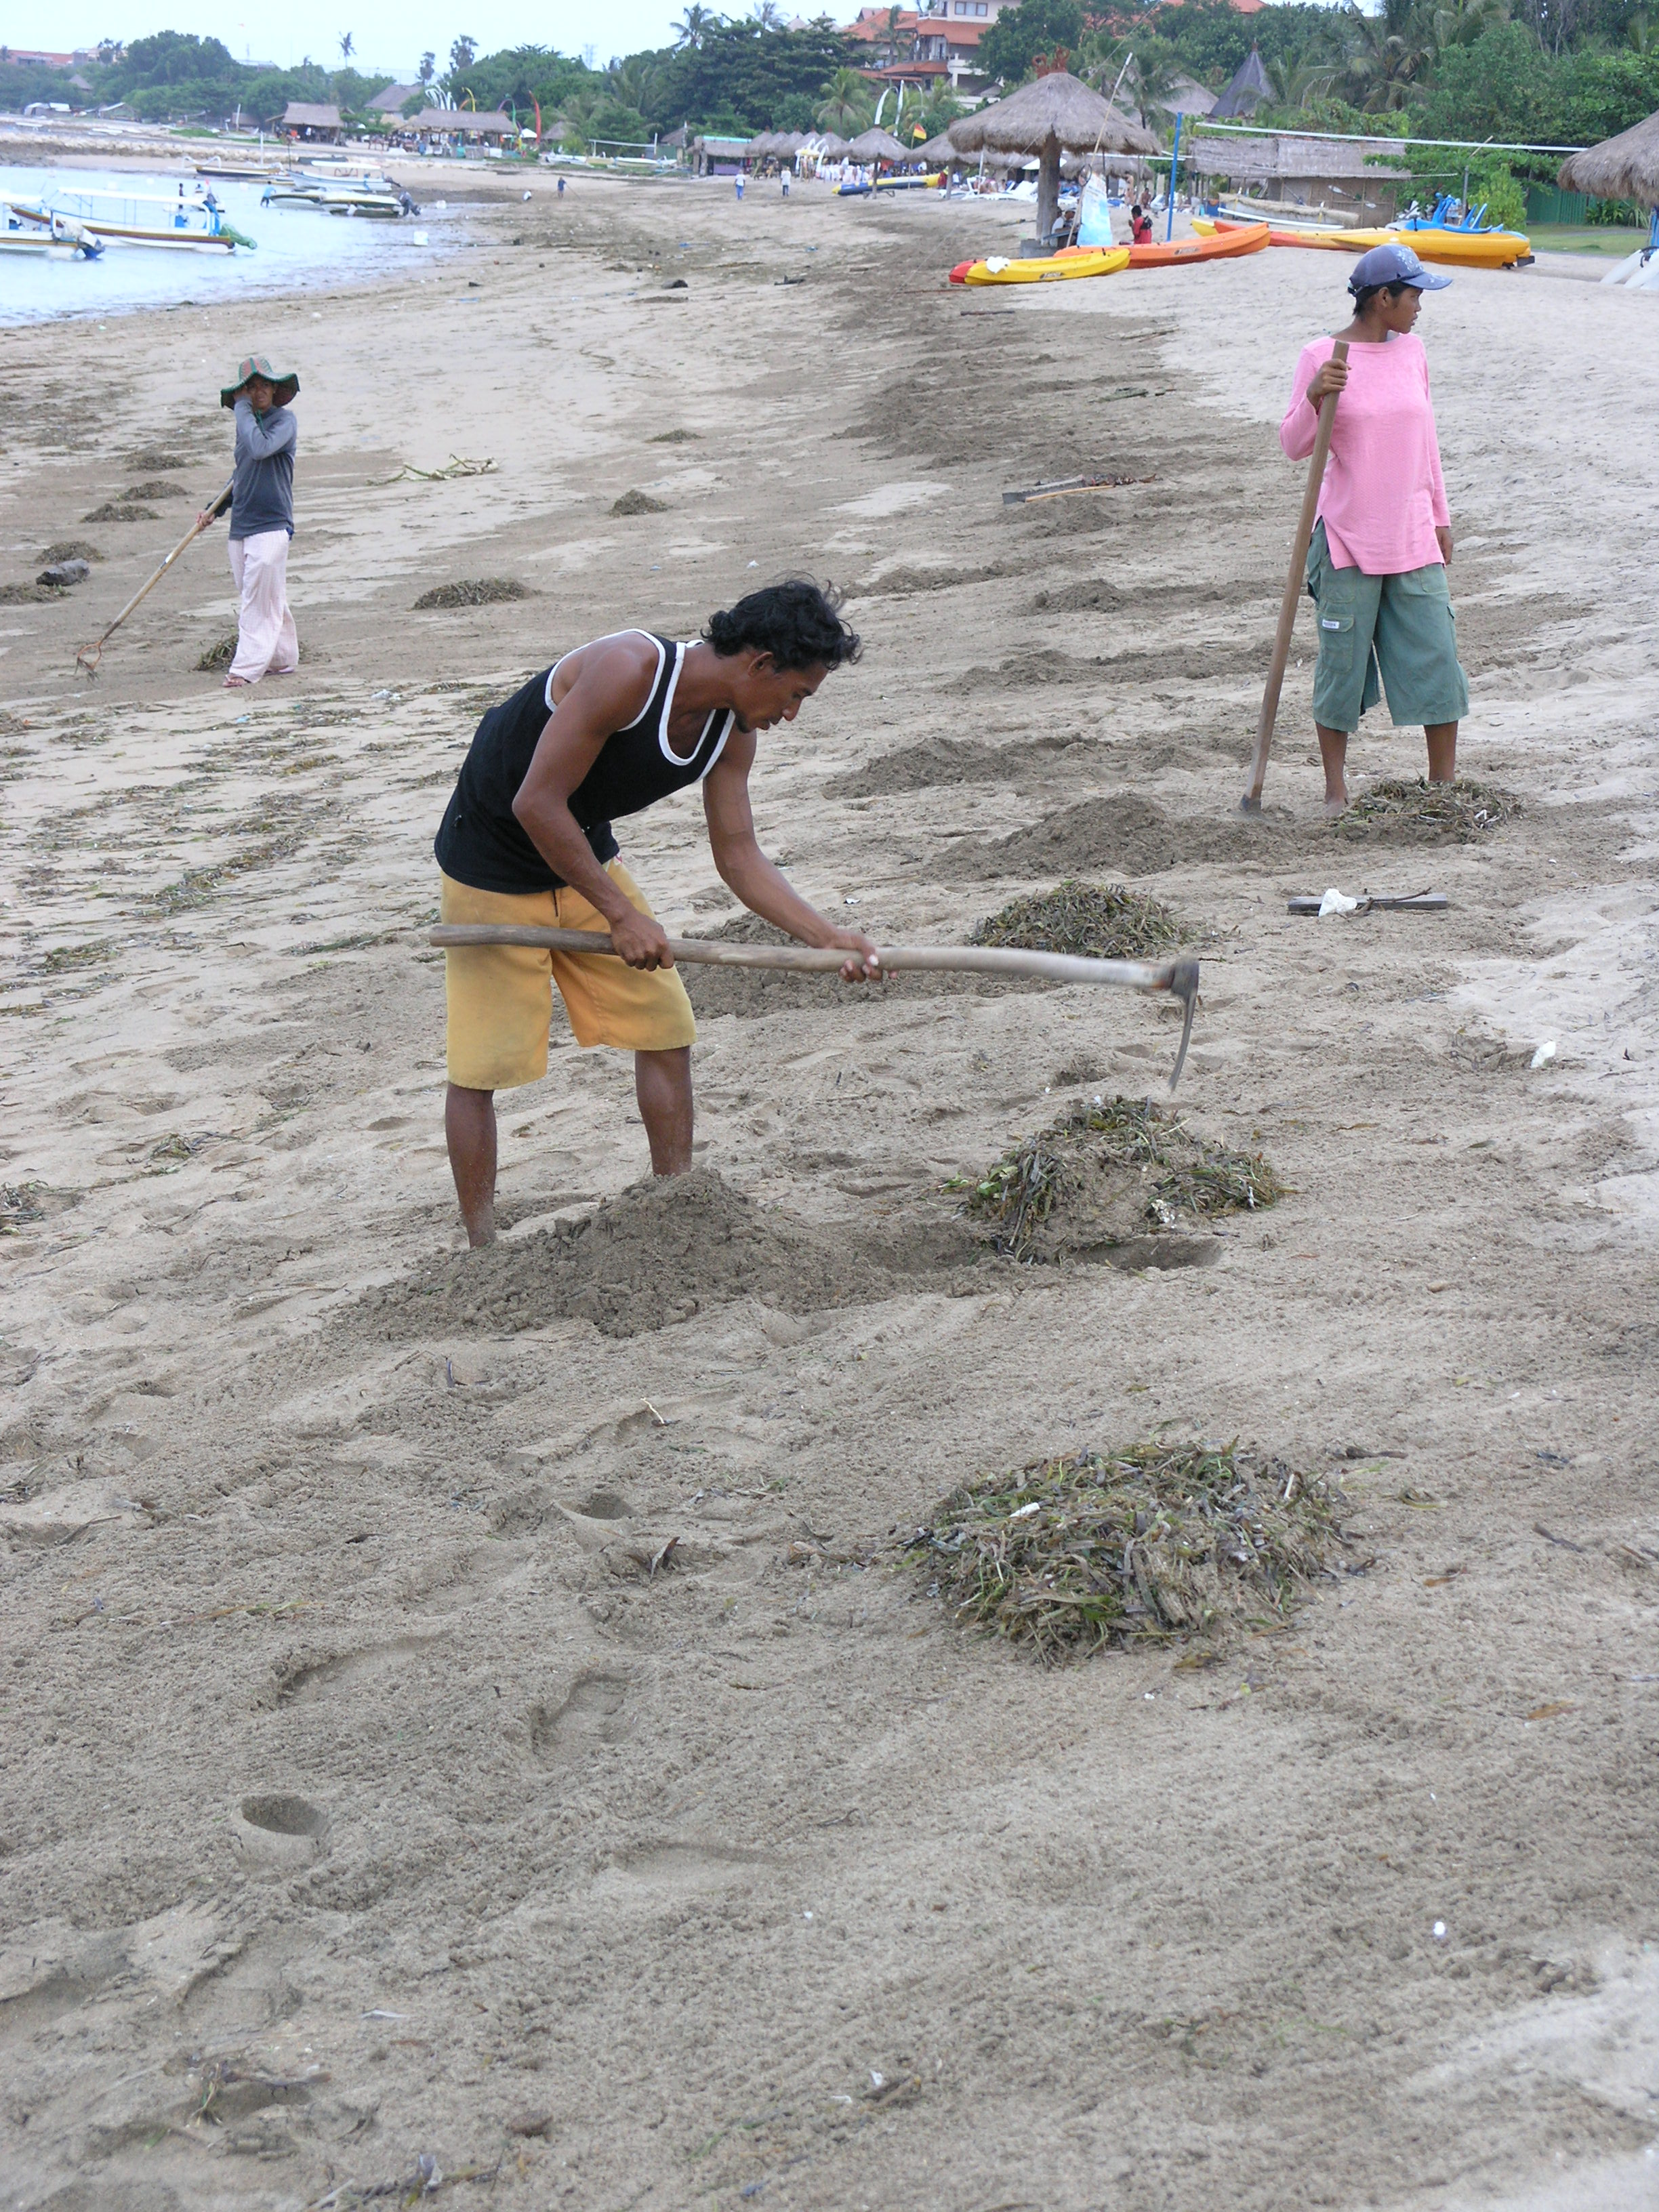 Balinese local resort workers burying the washed up seagrasses under the sand at the beach